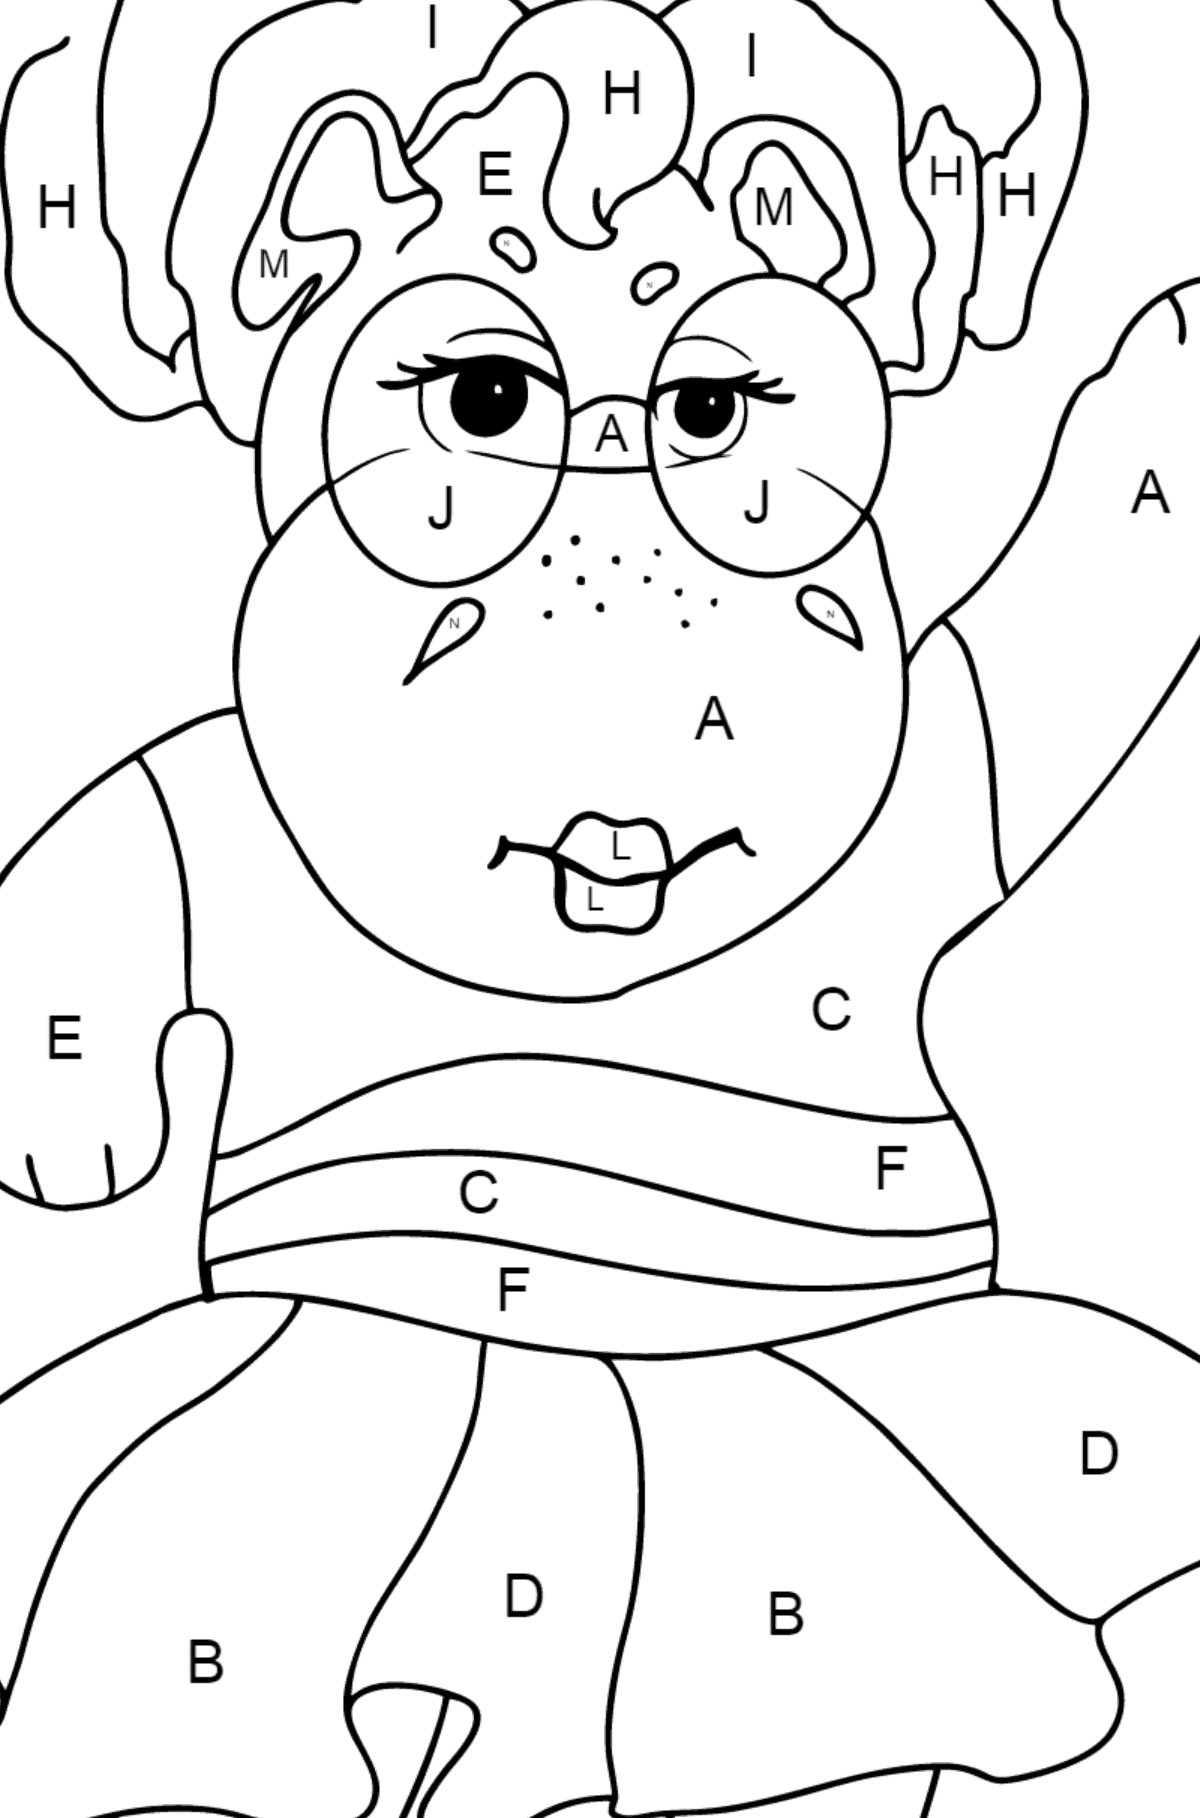 Coloring Page - A Hippo in Sunglasses for Children  - Color by Letters